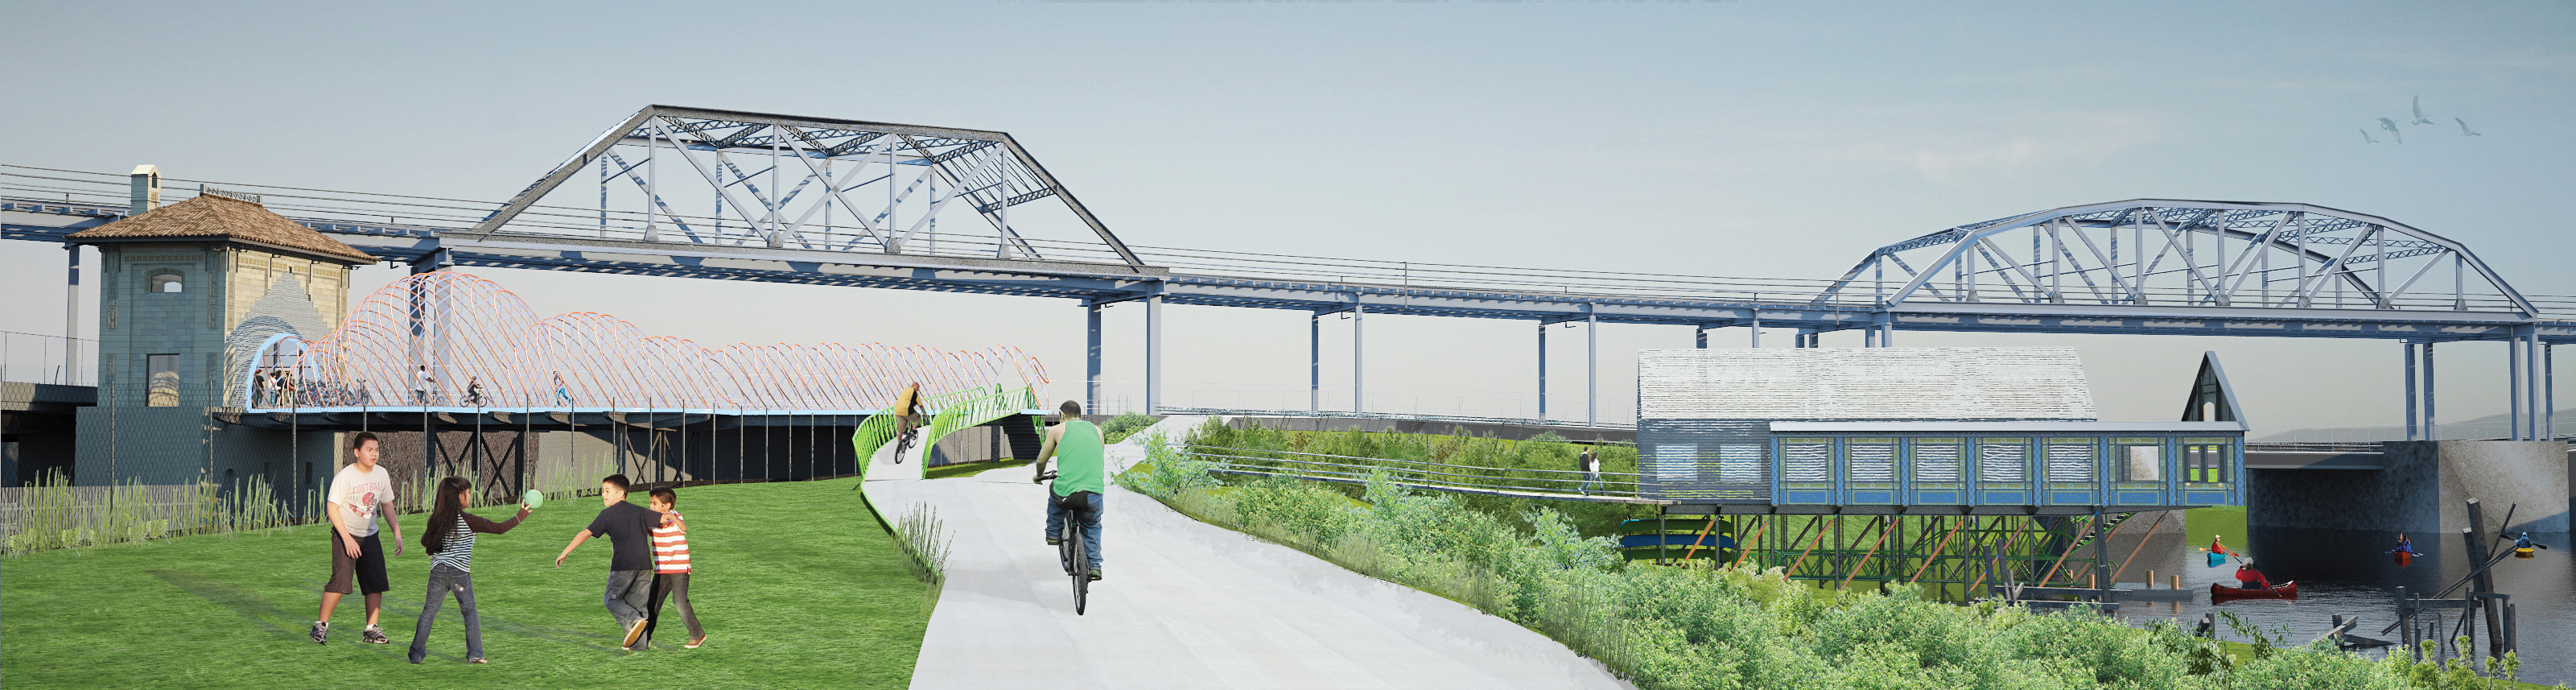 Revitalized Bronx River plan near the elevated 6 train